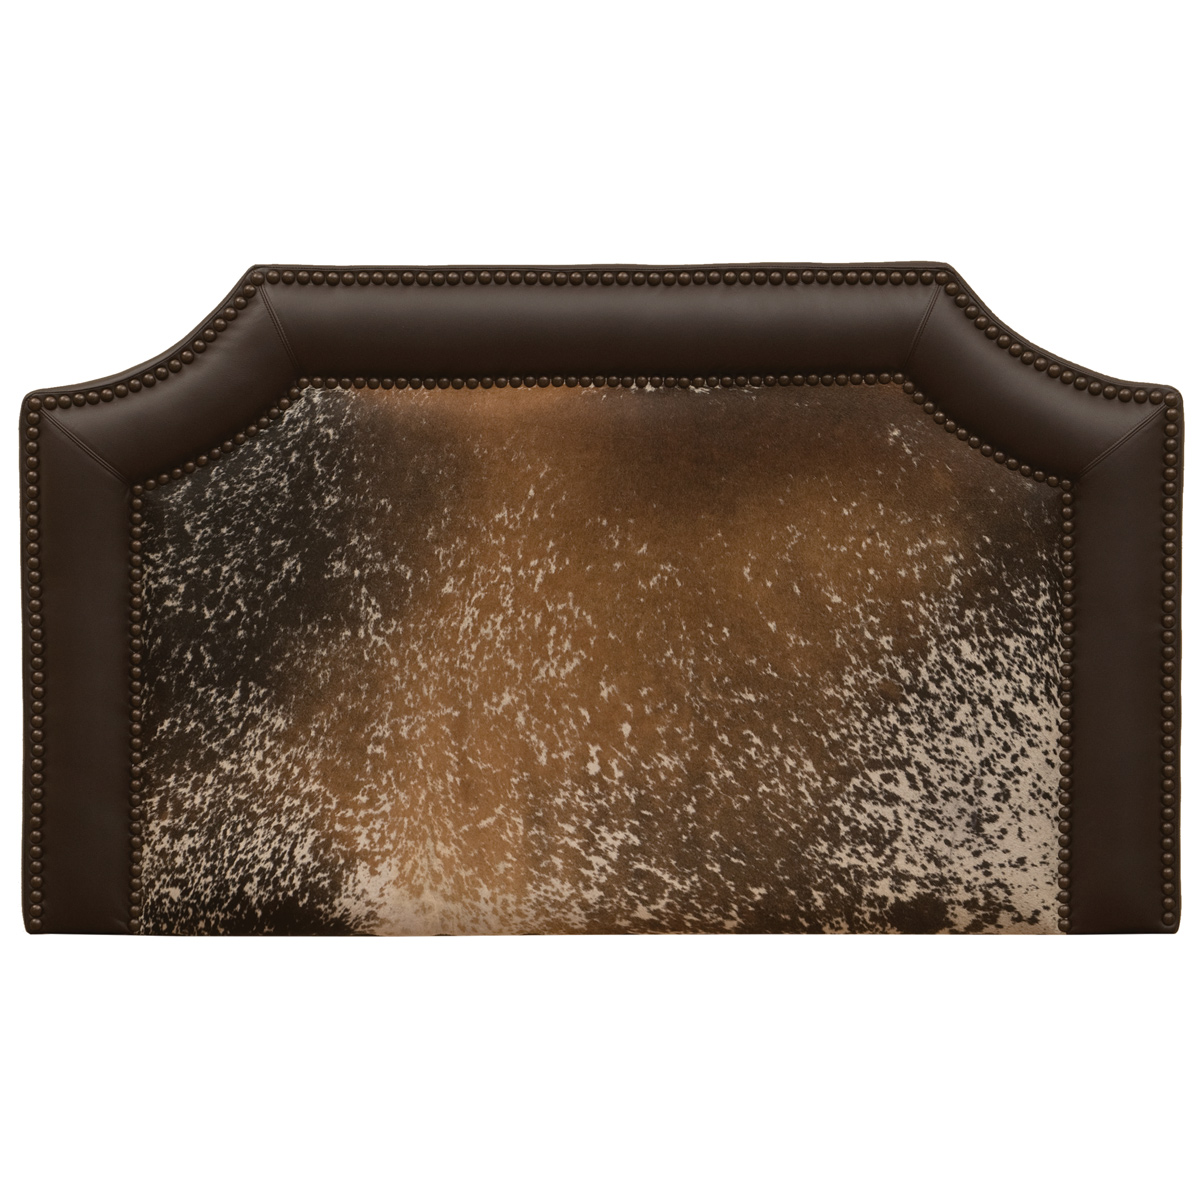 Black Forest Decor Outlaw speckled hair on hide headboard...